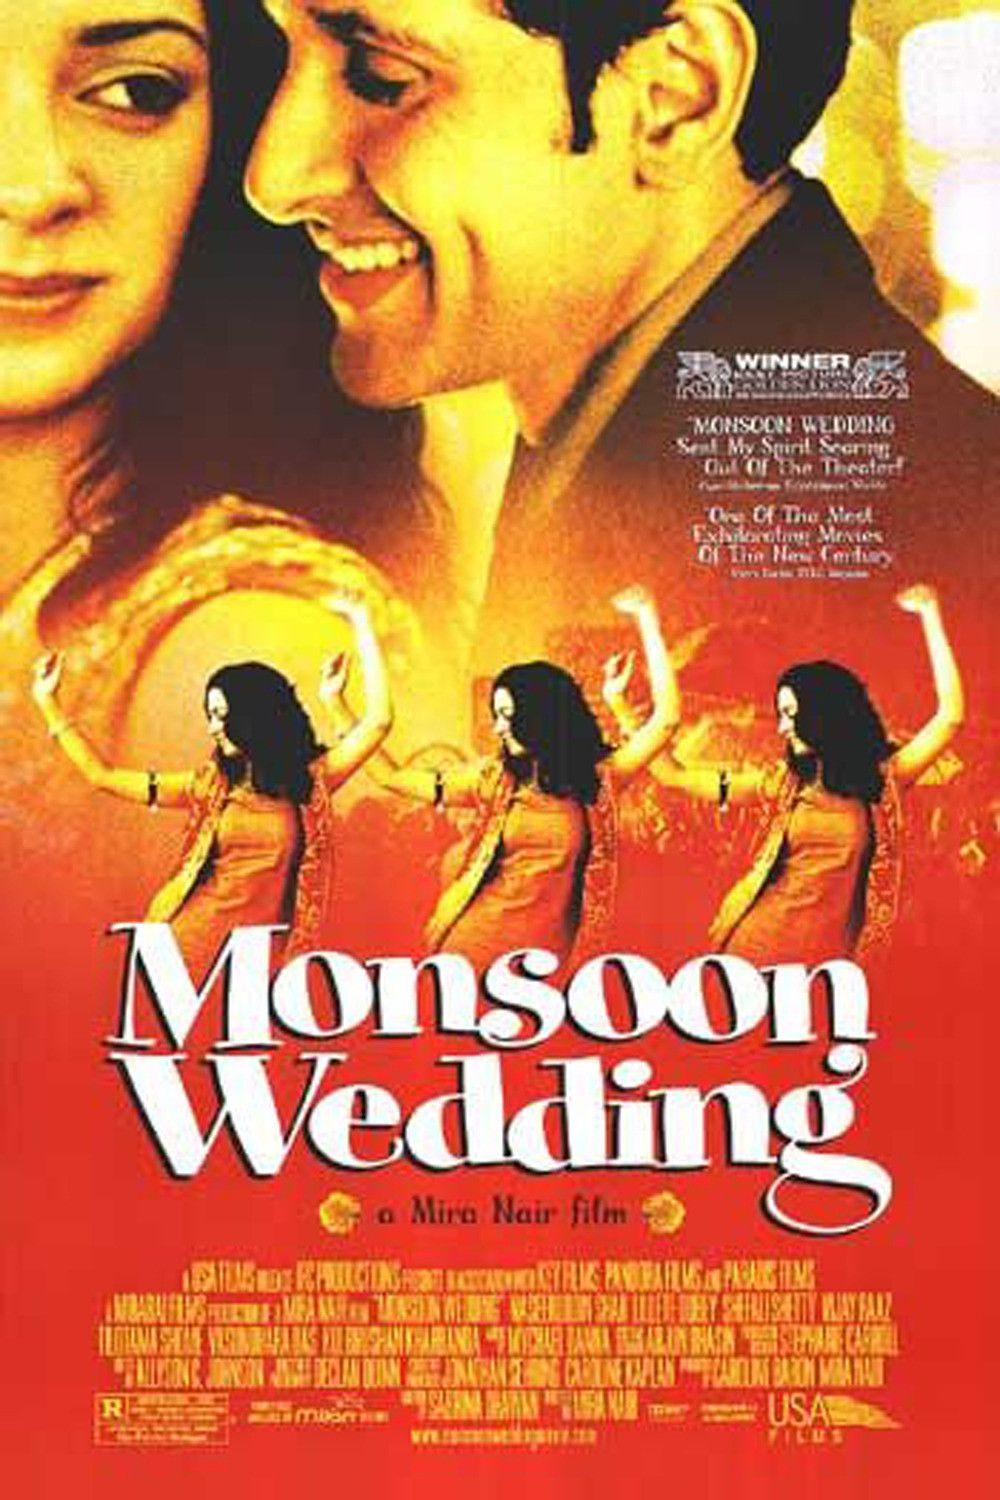 Monsoon Wedding A Mira Nair Film Love Love Love The Trials And Tribulations Of Wedding Preparation Family Dra Wedding Movies Happy Movie Monsoon Wedding